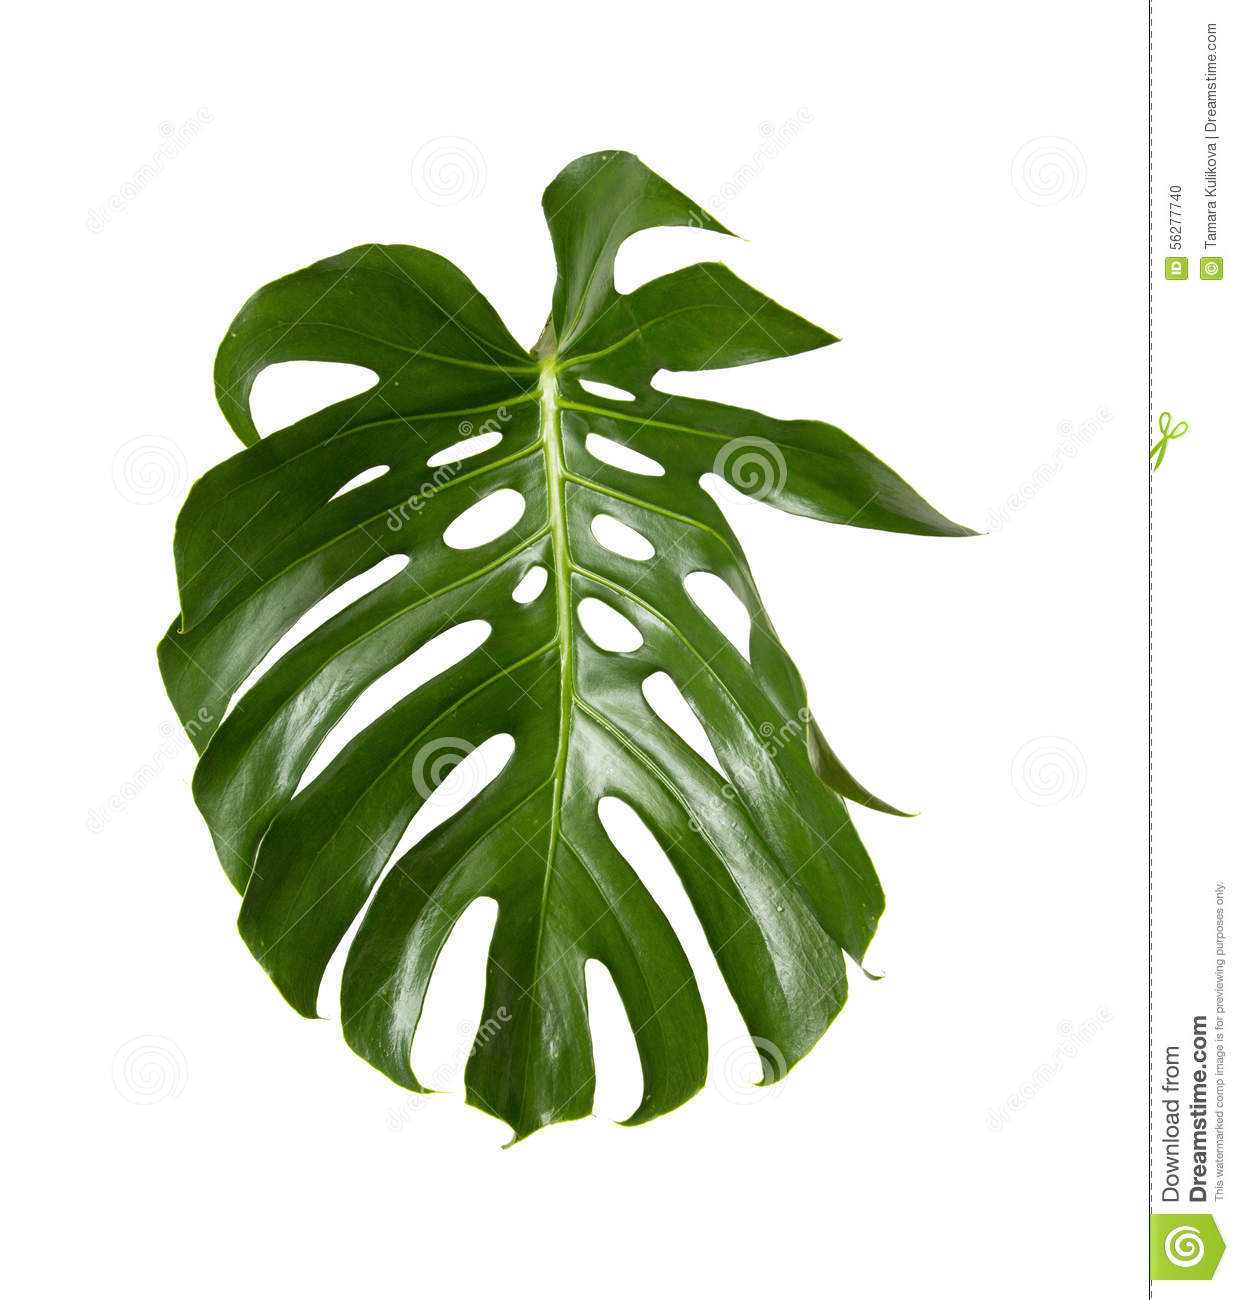 Big Green Egg Outdoor Kitchen: Big Green Leaf Of Monstera Plant Stock Image